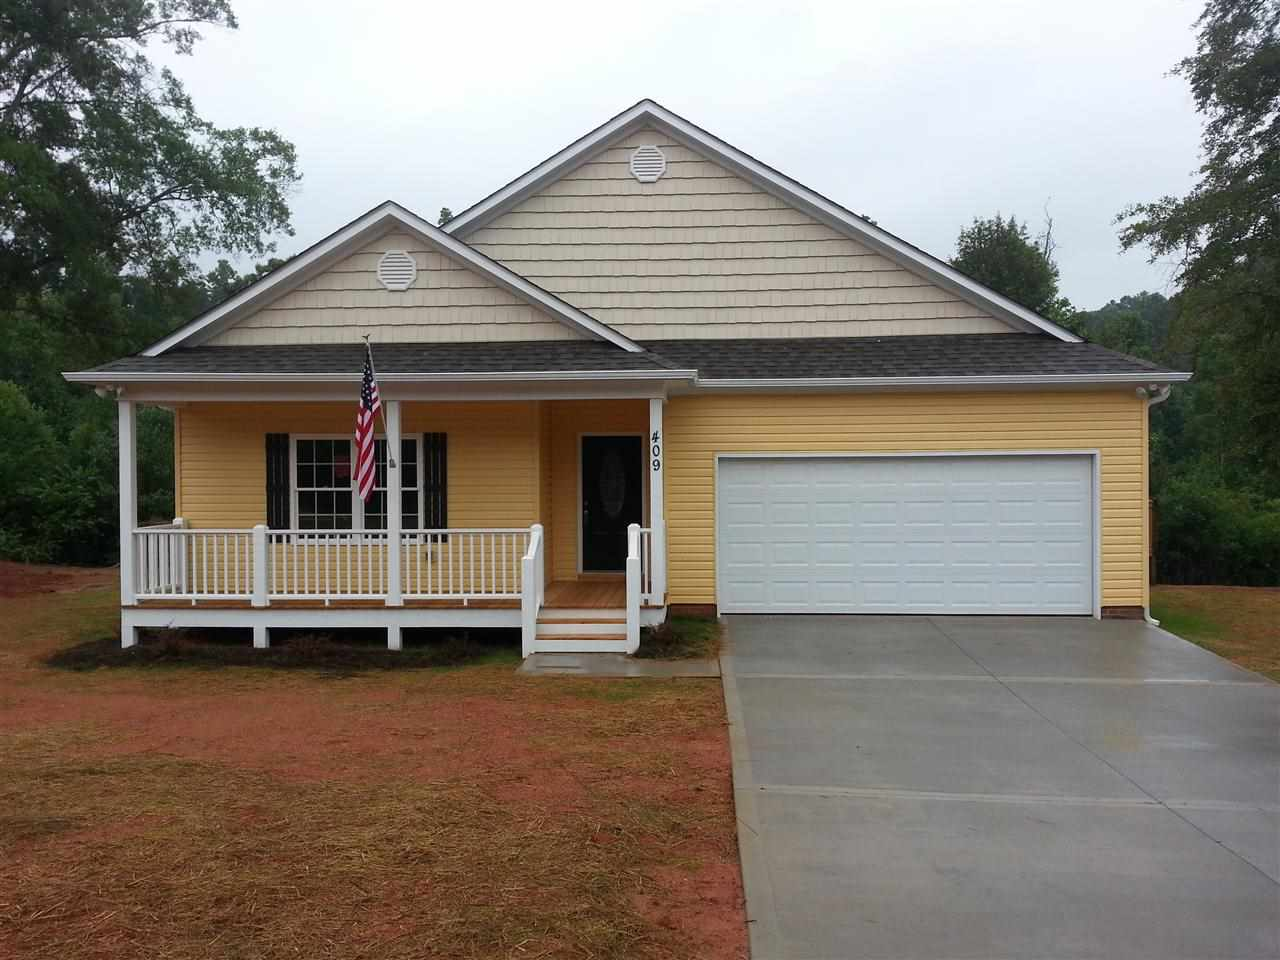 409 N Palmetto St, Liberty, SC 29657